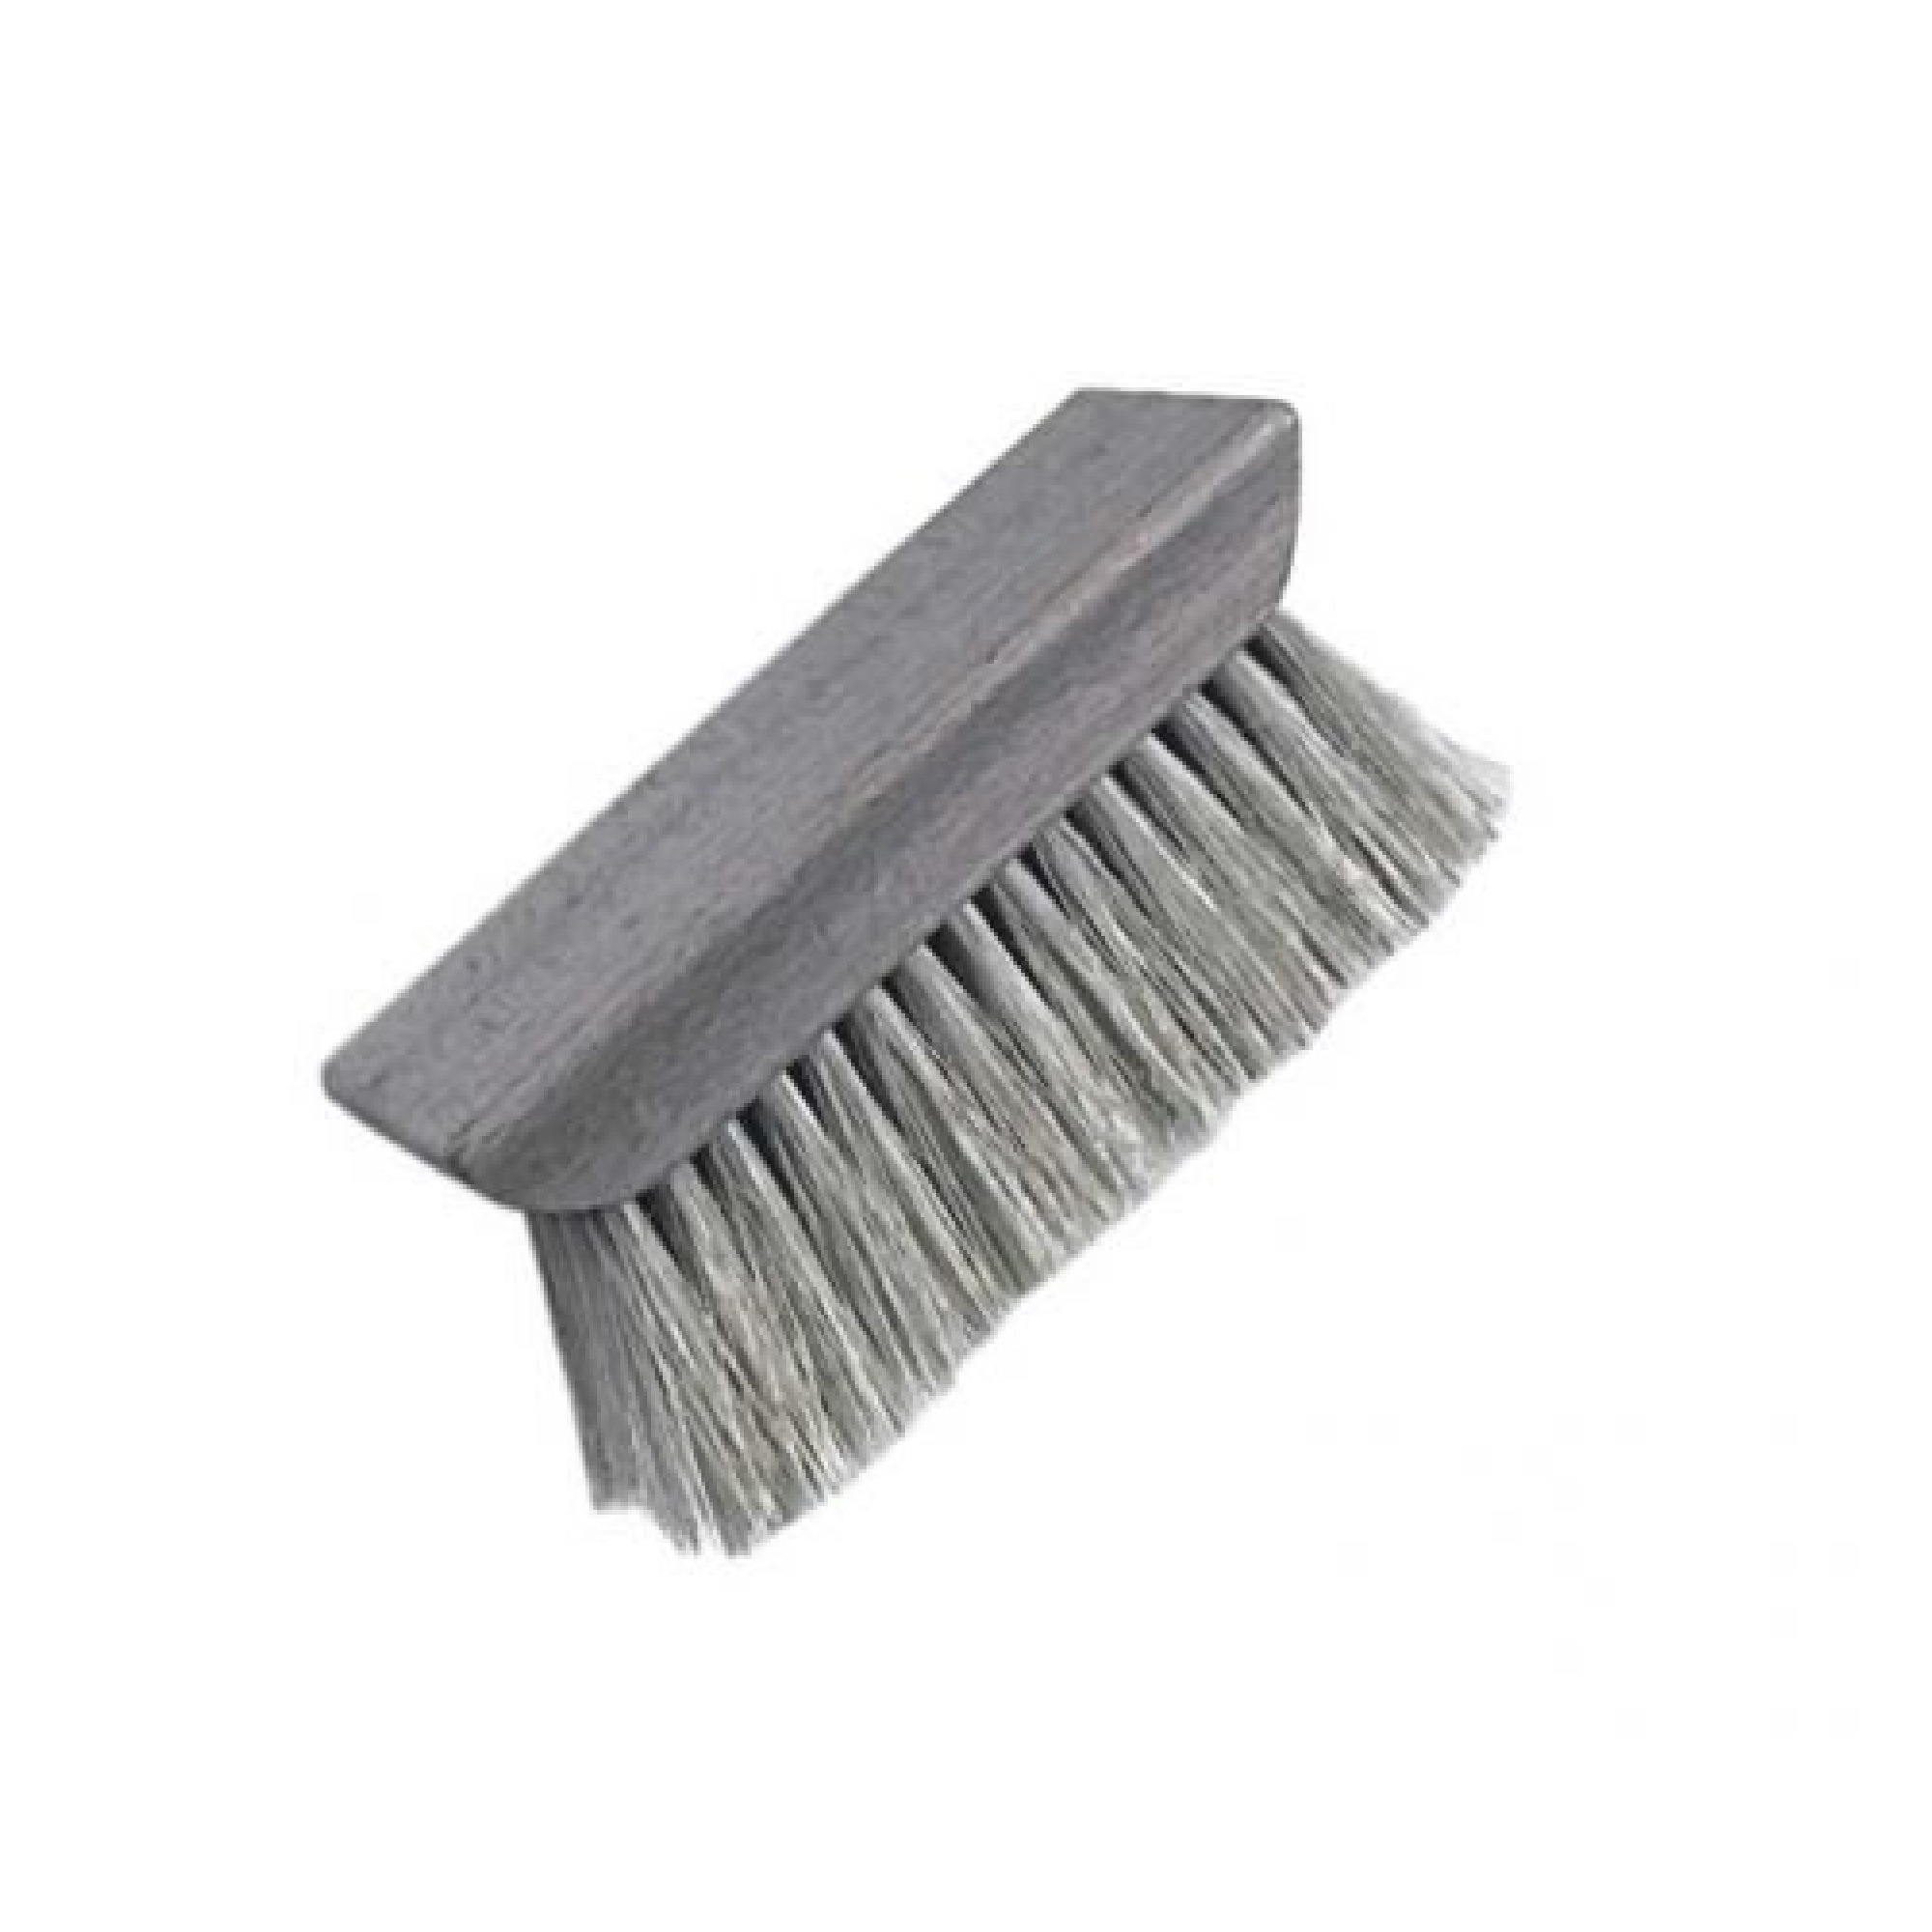 felt roofing wetting brush with wooden head on a white background